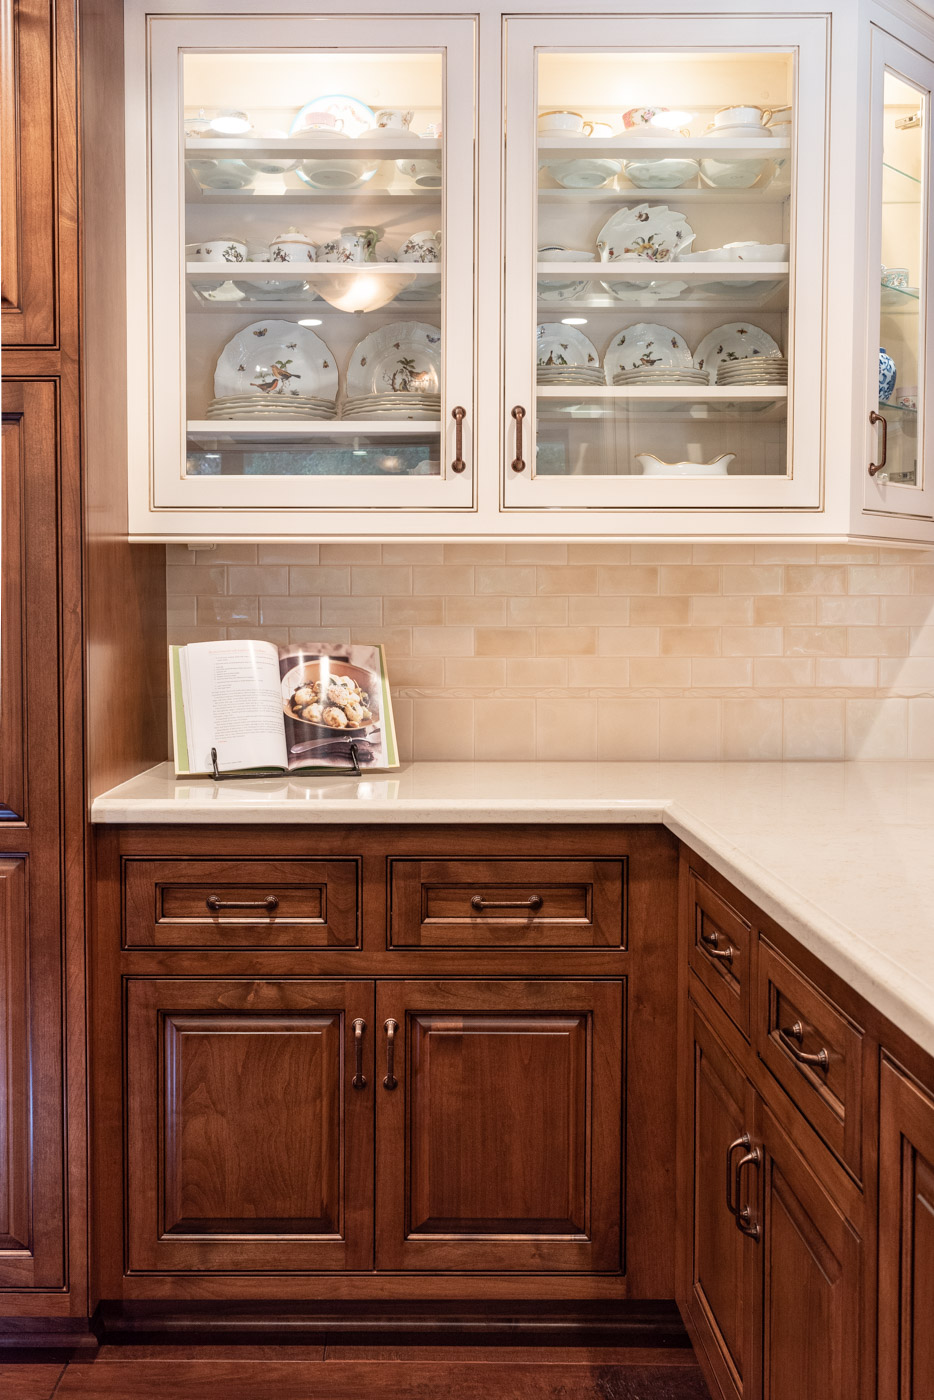 English Country custom kitchen cabinets with glass display cabinets